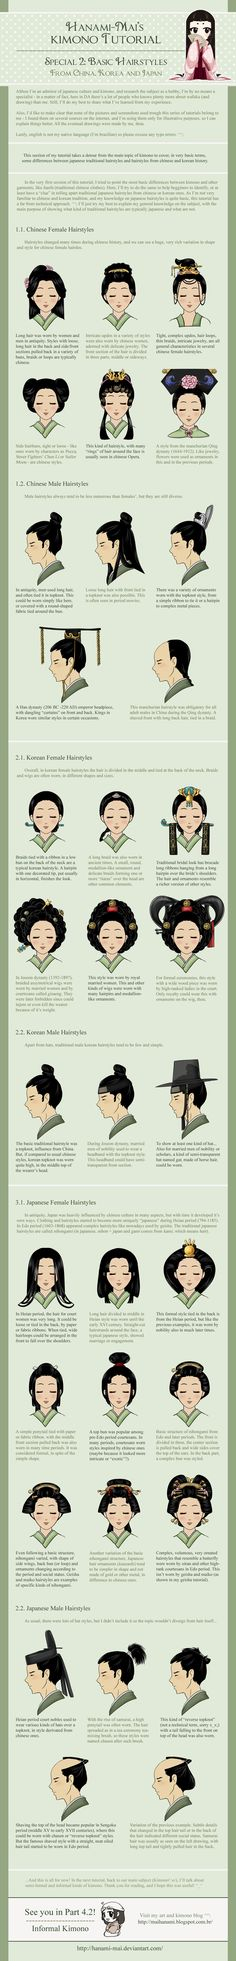 Kimono Tutorial - Hairstyles Special by Hanami-Mai.- Differences between Chinese, Korean, and Japanese hairstyle